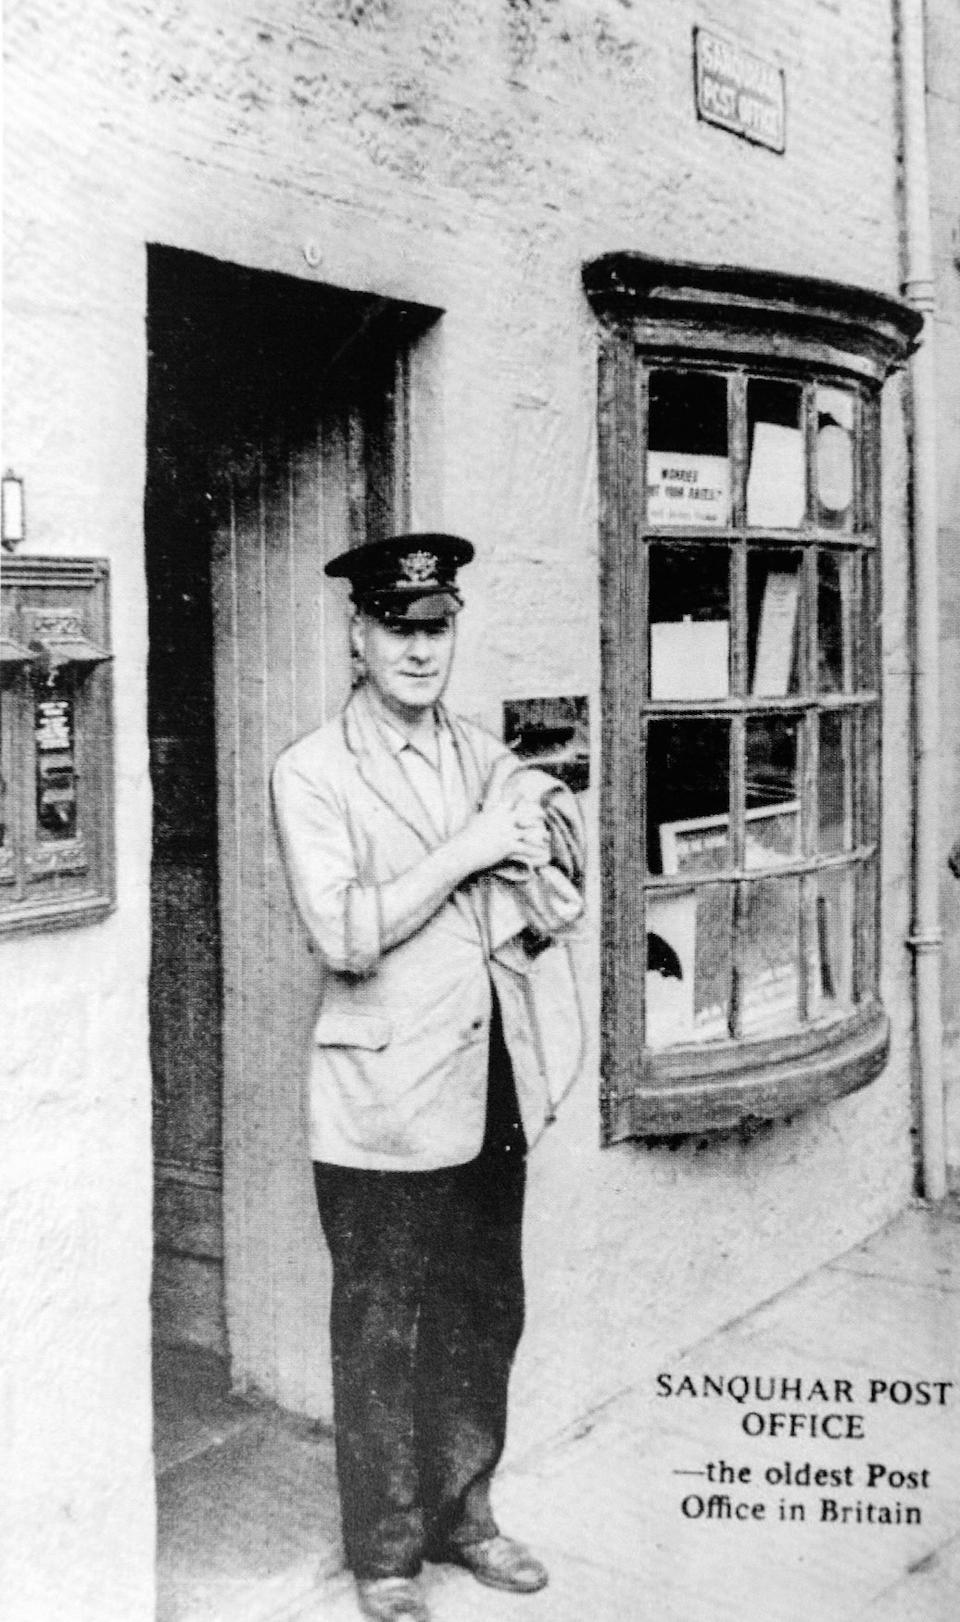 Postman Bob Morrison at Sanquhar Post Office in Dumfries and Galloway (Picture: SWNS)